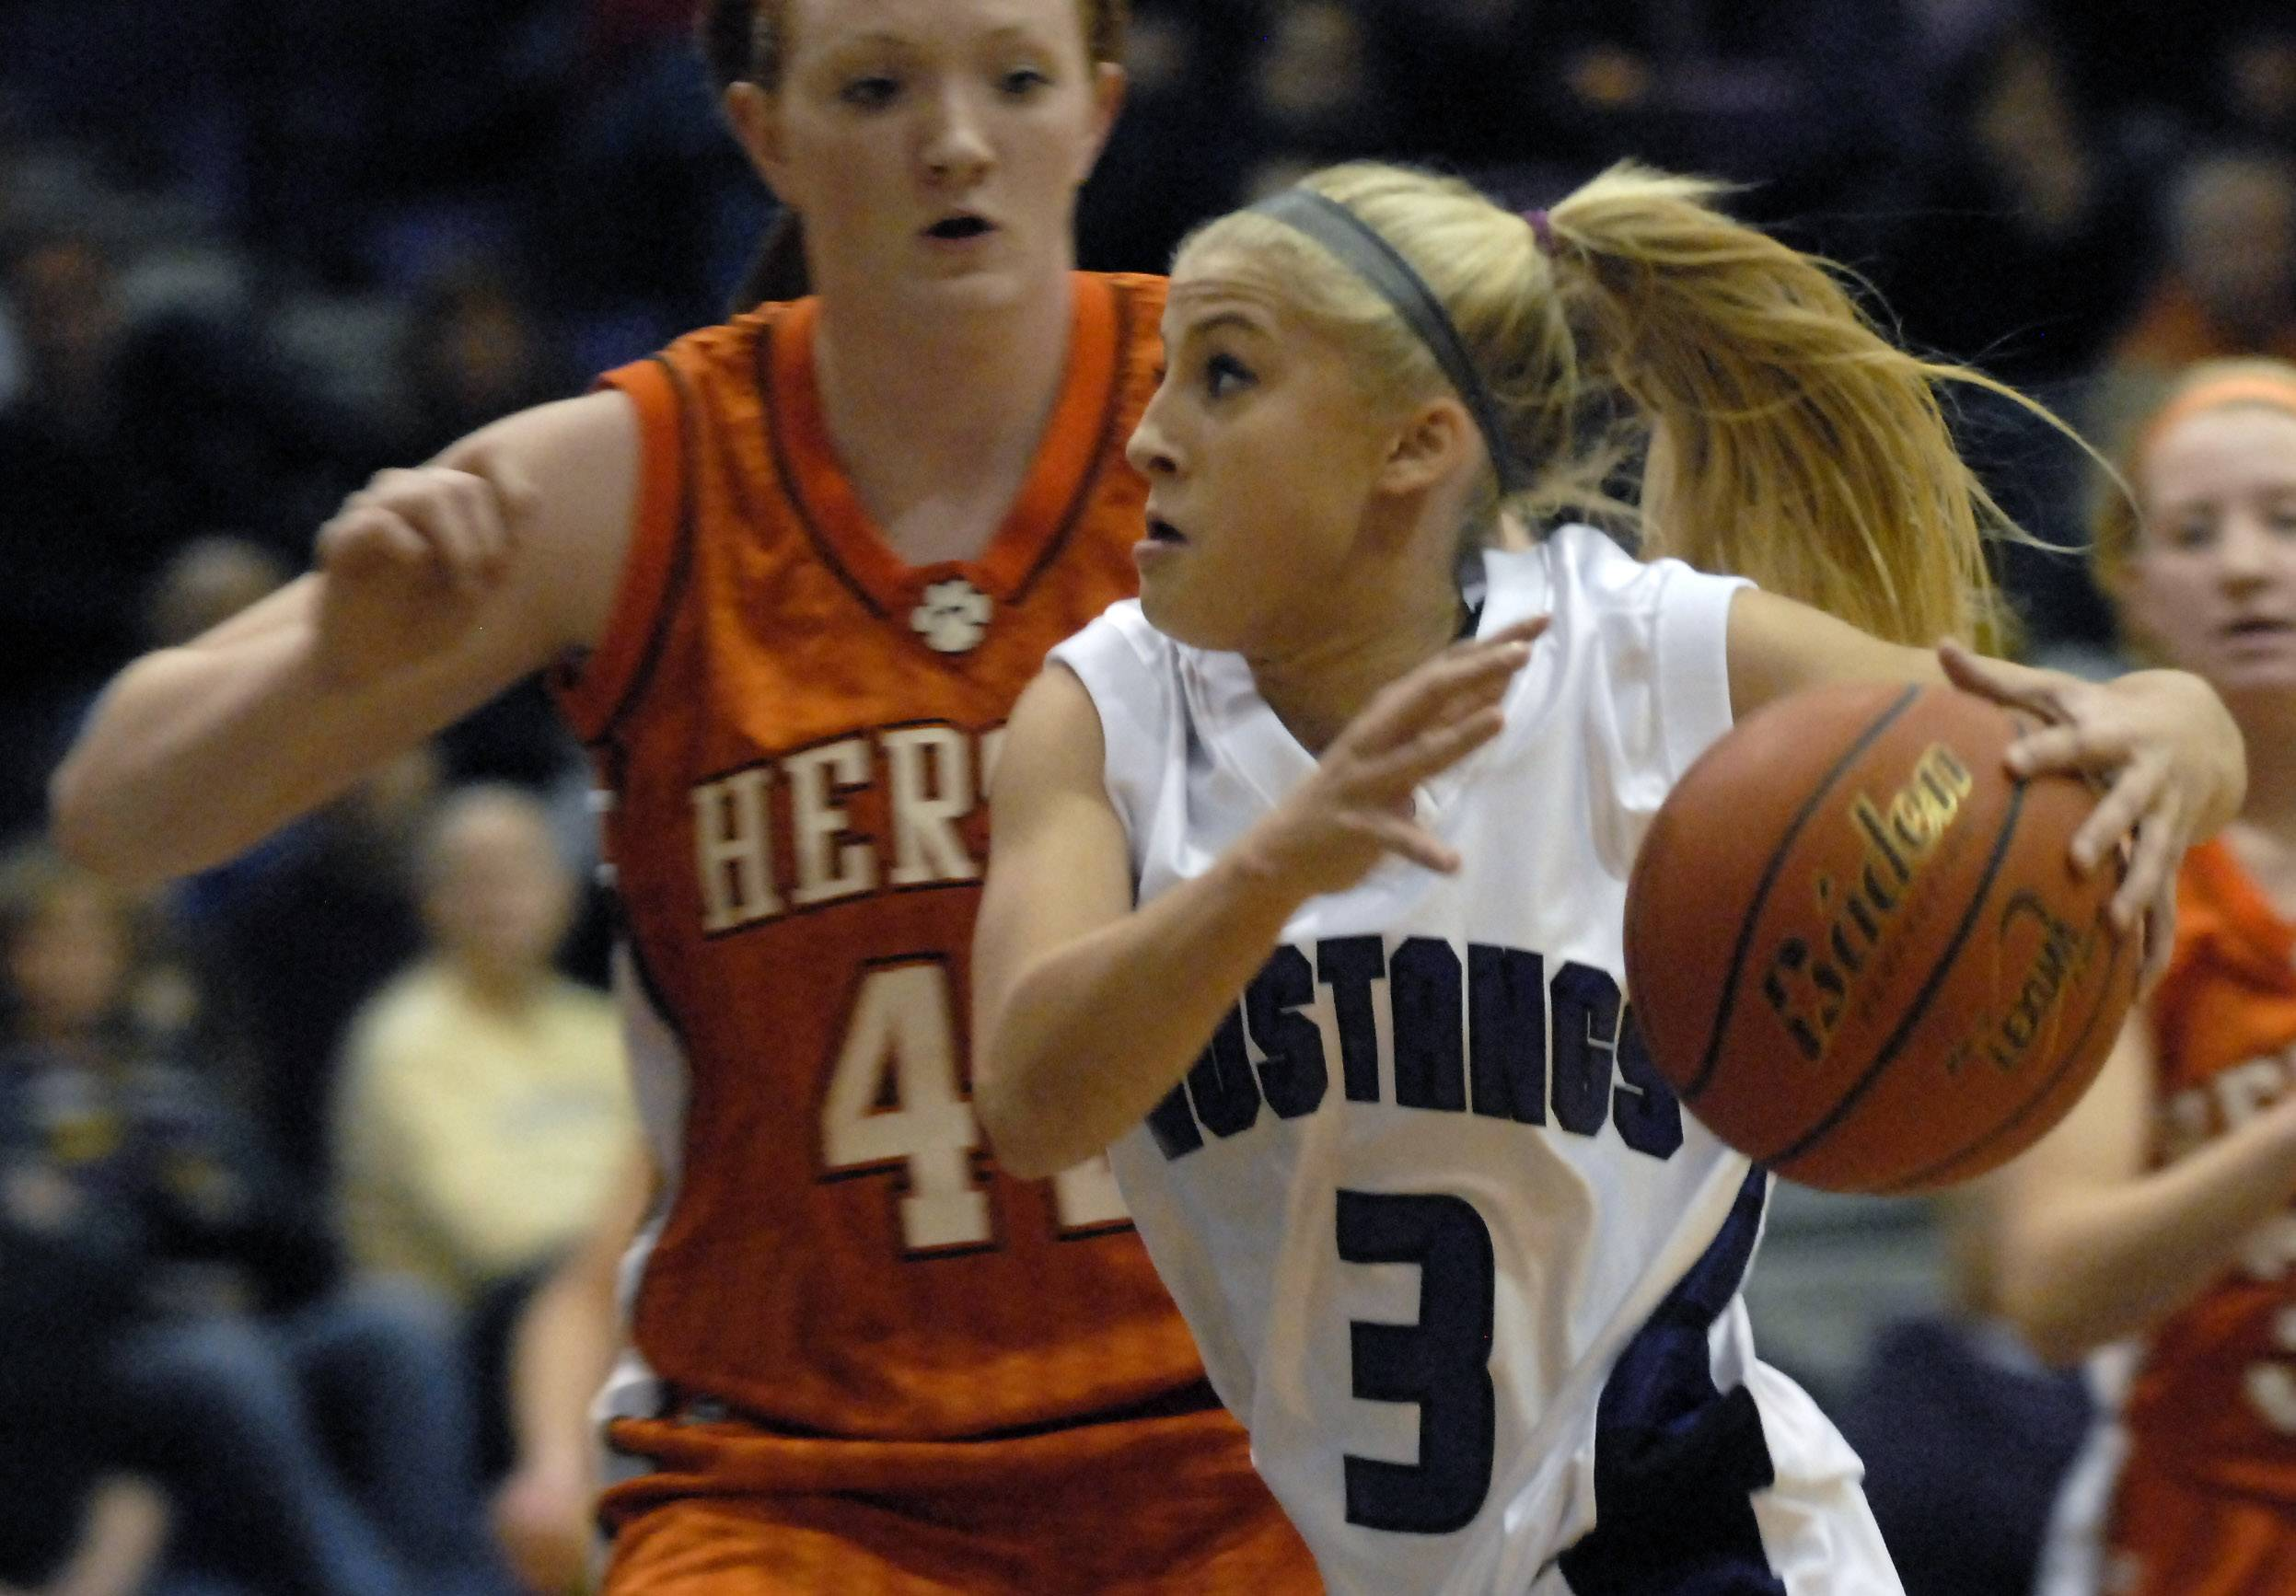 Rolling Meadows' Jacqueline Kemph drives in the lane against Hersey's Maggie Hogen.